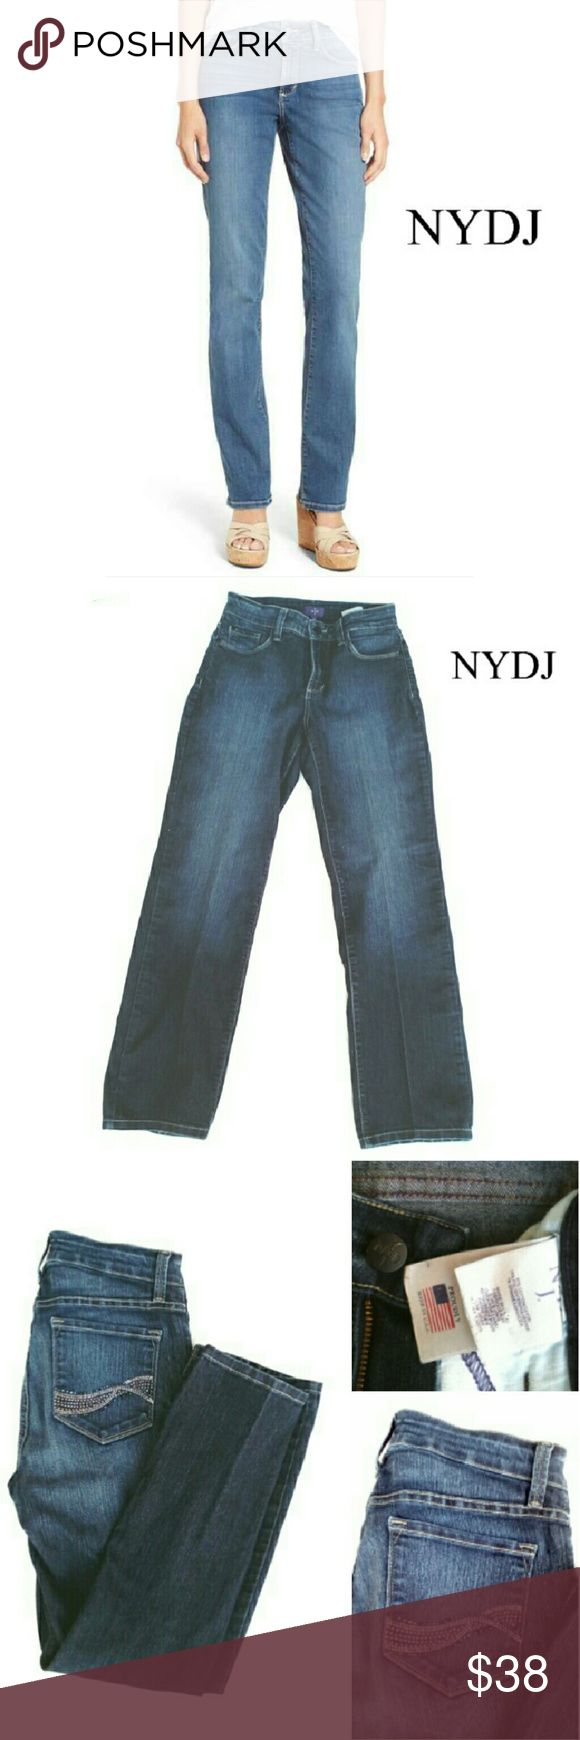 """NYDJ  LIFT & TUCK STRAIGHT LEG PETITE JEANS NYDJ LIFT & TUCK STRAIGHT LEG STRETCH 4P JEANS Pre-Loved  / RN# 132016 HIGH WAISTED - Rise Approx 10"""" 80% Cotton 19% Polyester 1% Spandex Approx Meas; Rise 10"""" W 13"""" Inseam 39"""" Pls See All Pics. Ask ? If Needed NYDJ Jeans Straight Leg"""